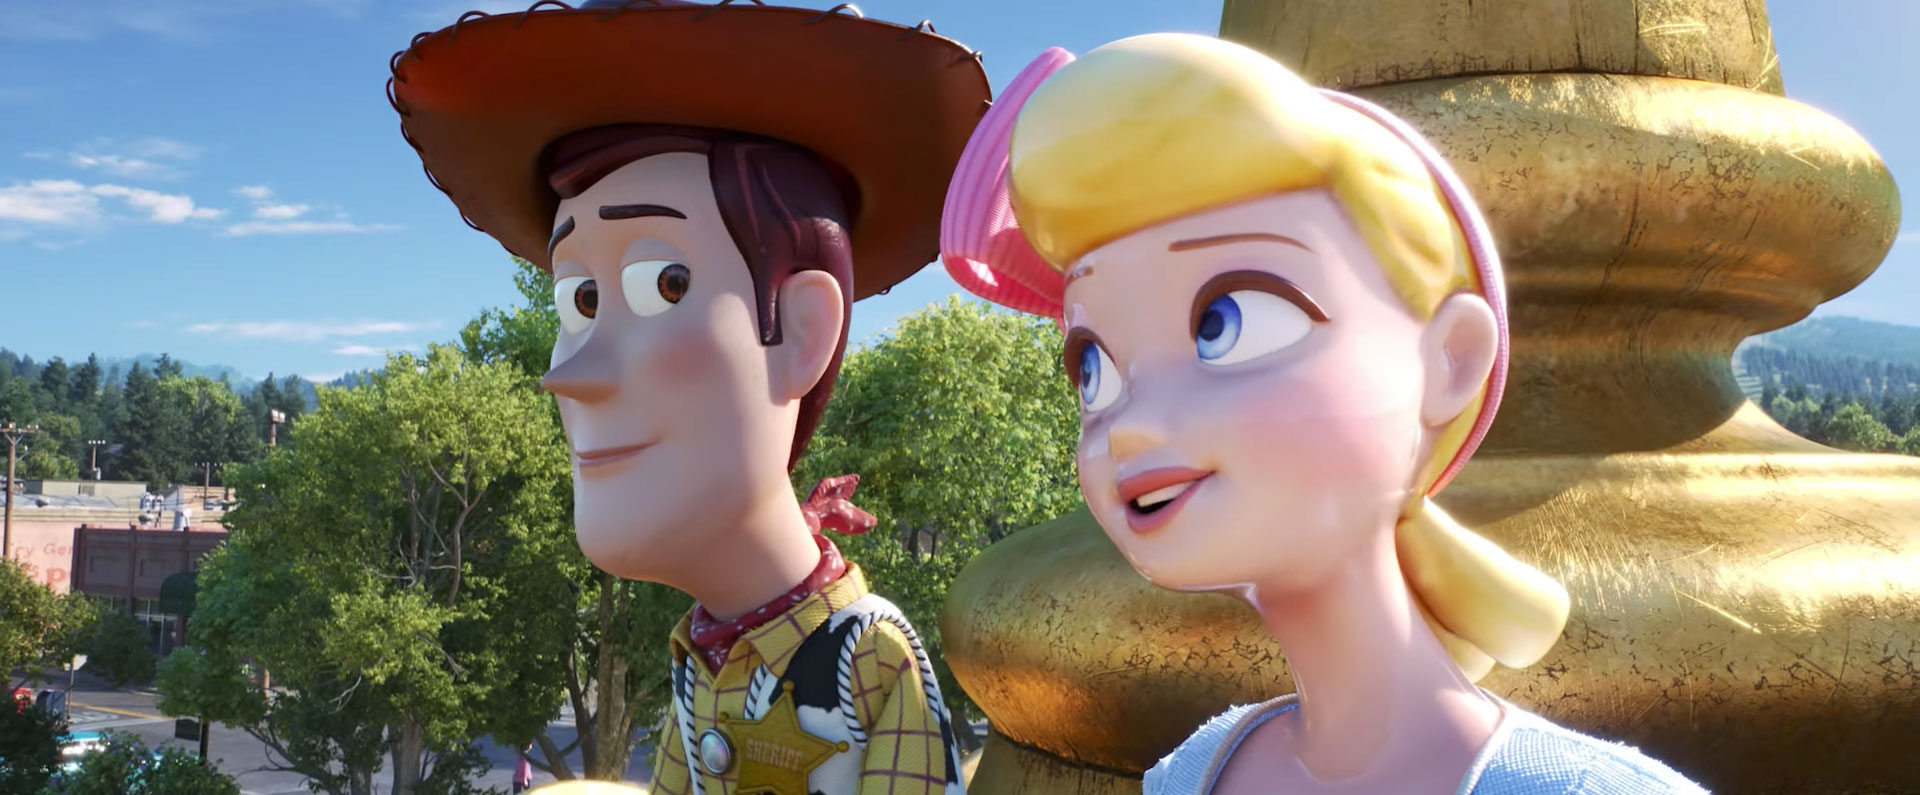 dc69f013f9f2 Emotional  Toy Story 4  Official Trailer Shows Bo Peep Return